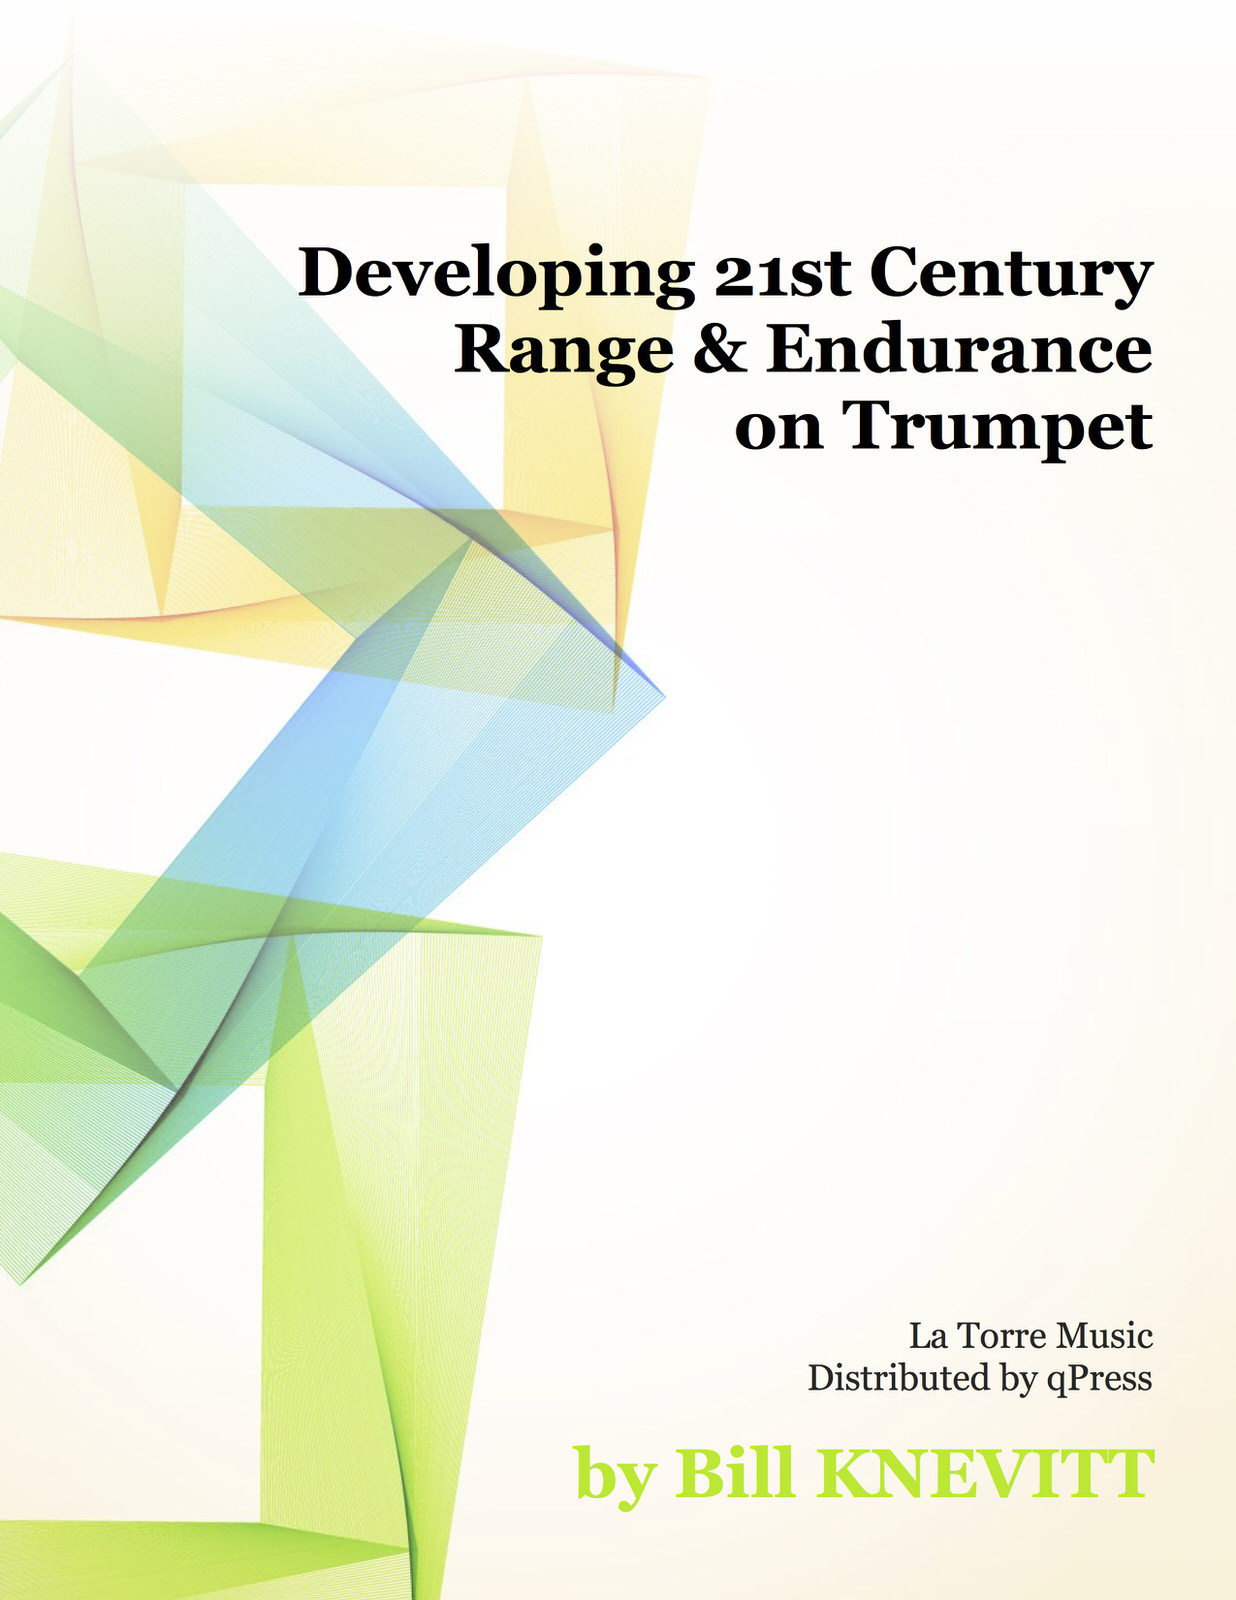 knevitt-developing-21st-century-range-and-endurance-on-trumpet